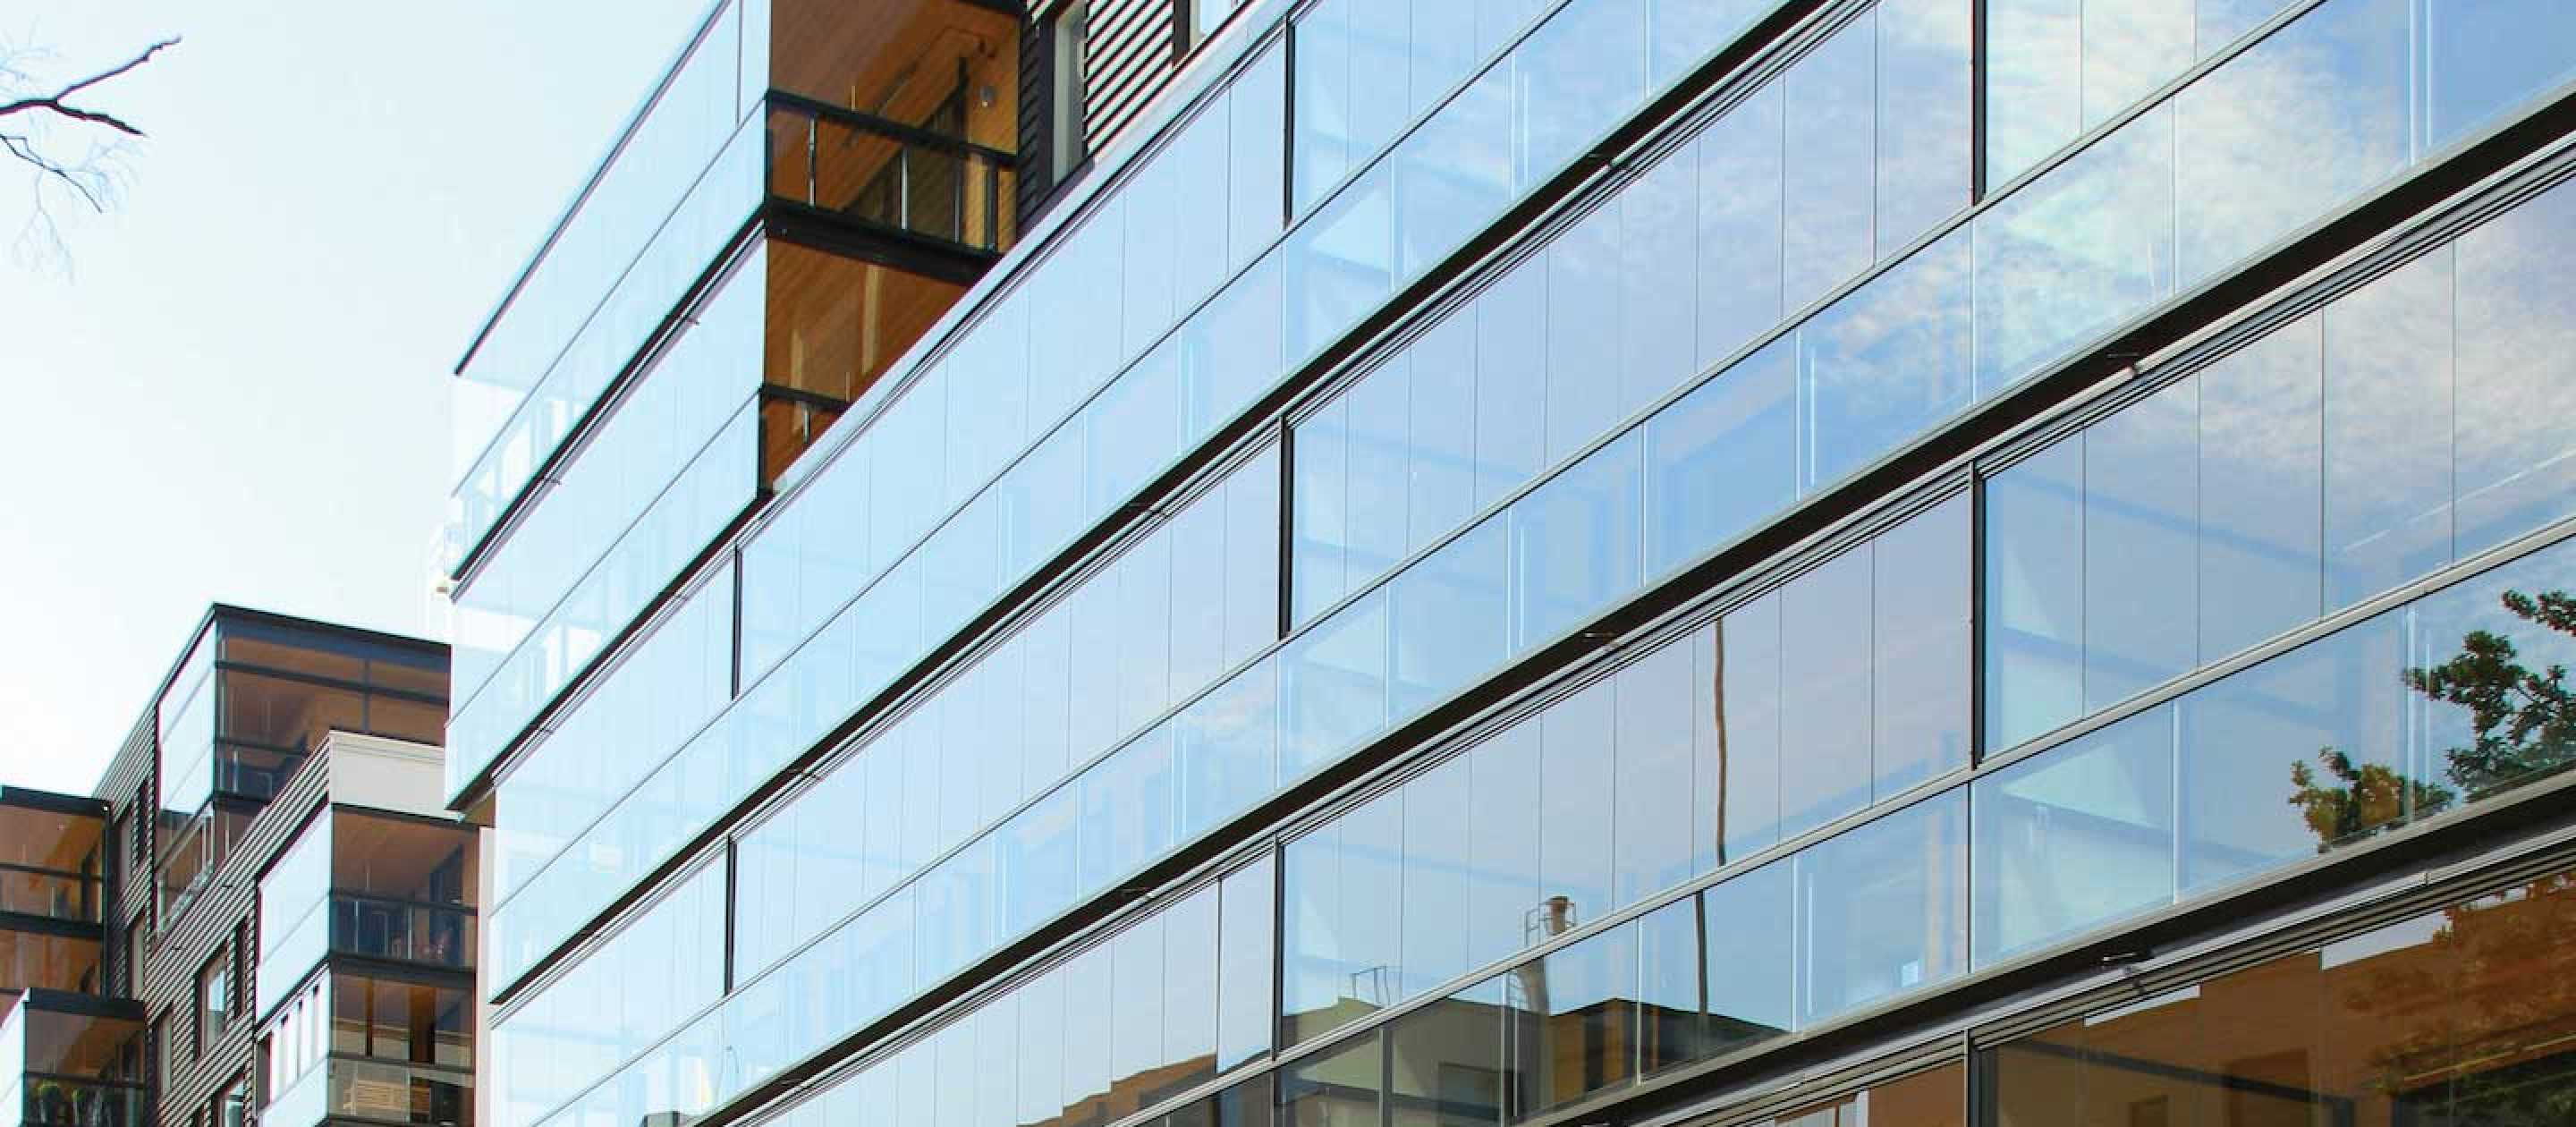 lumon canada, balcony glass, balcony facades, balcony glazing, retractable glass walls